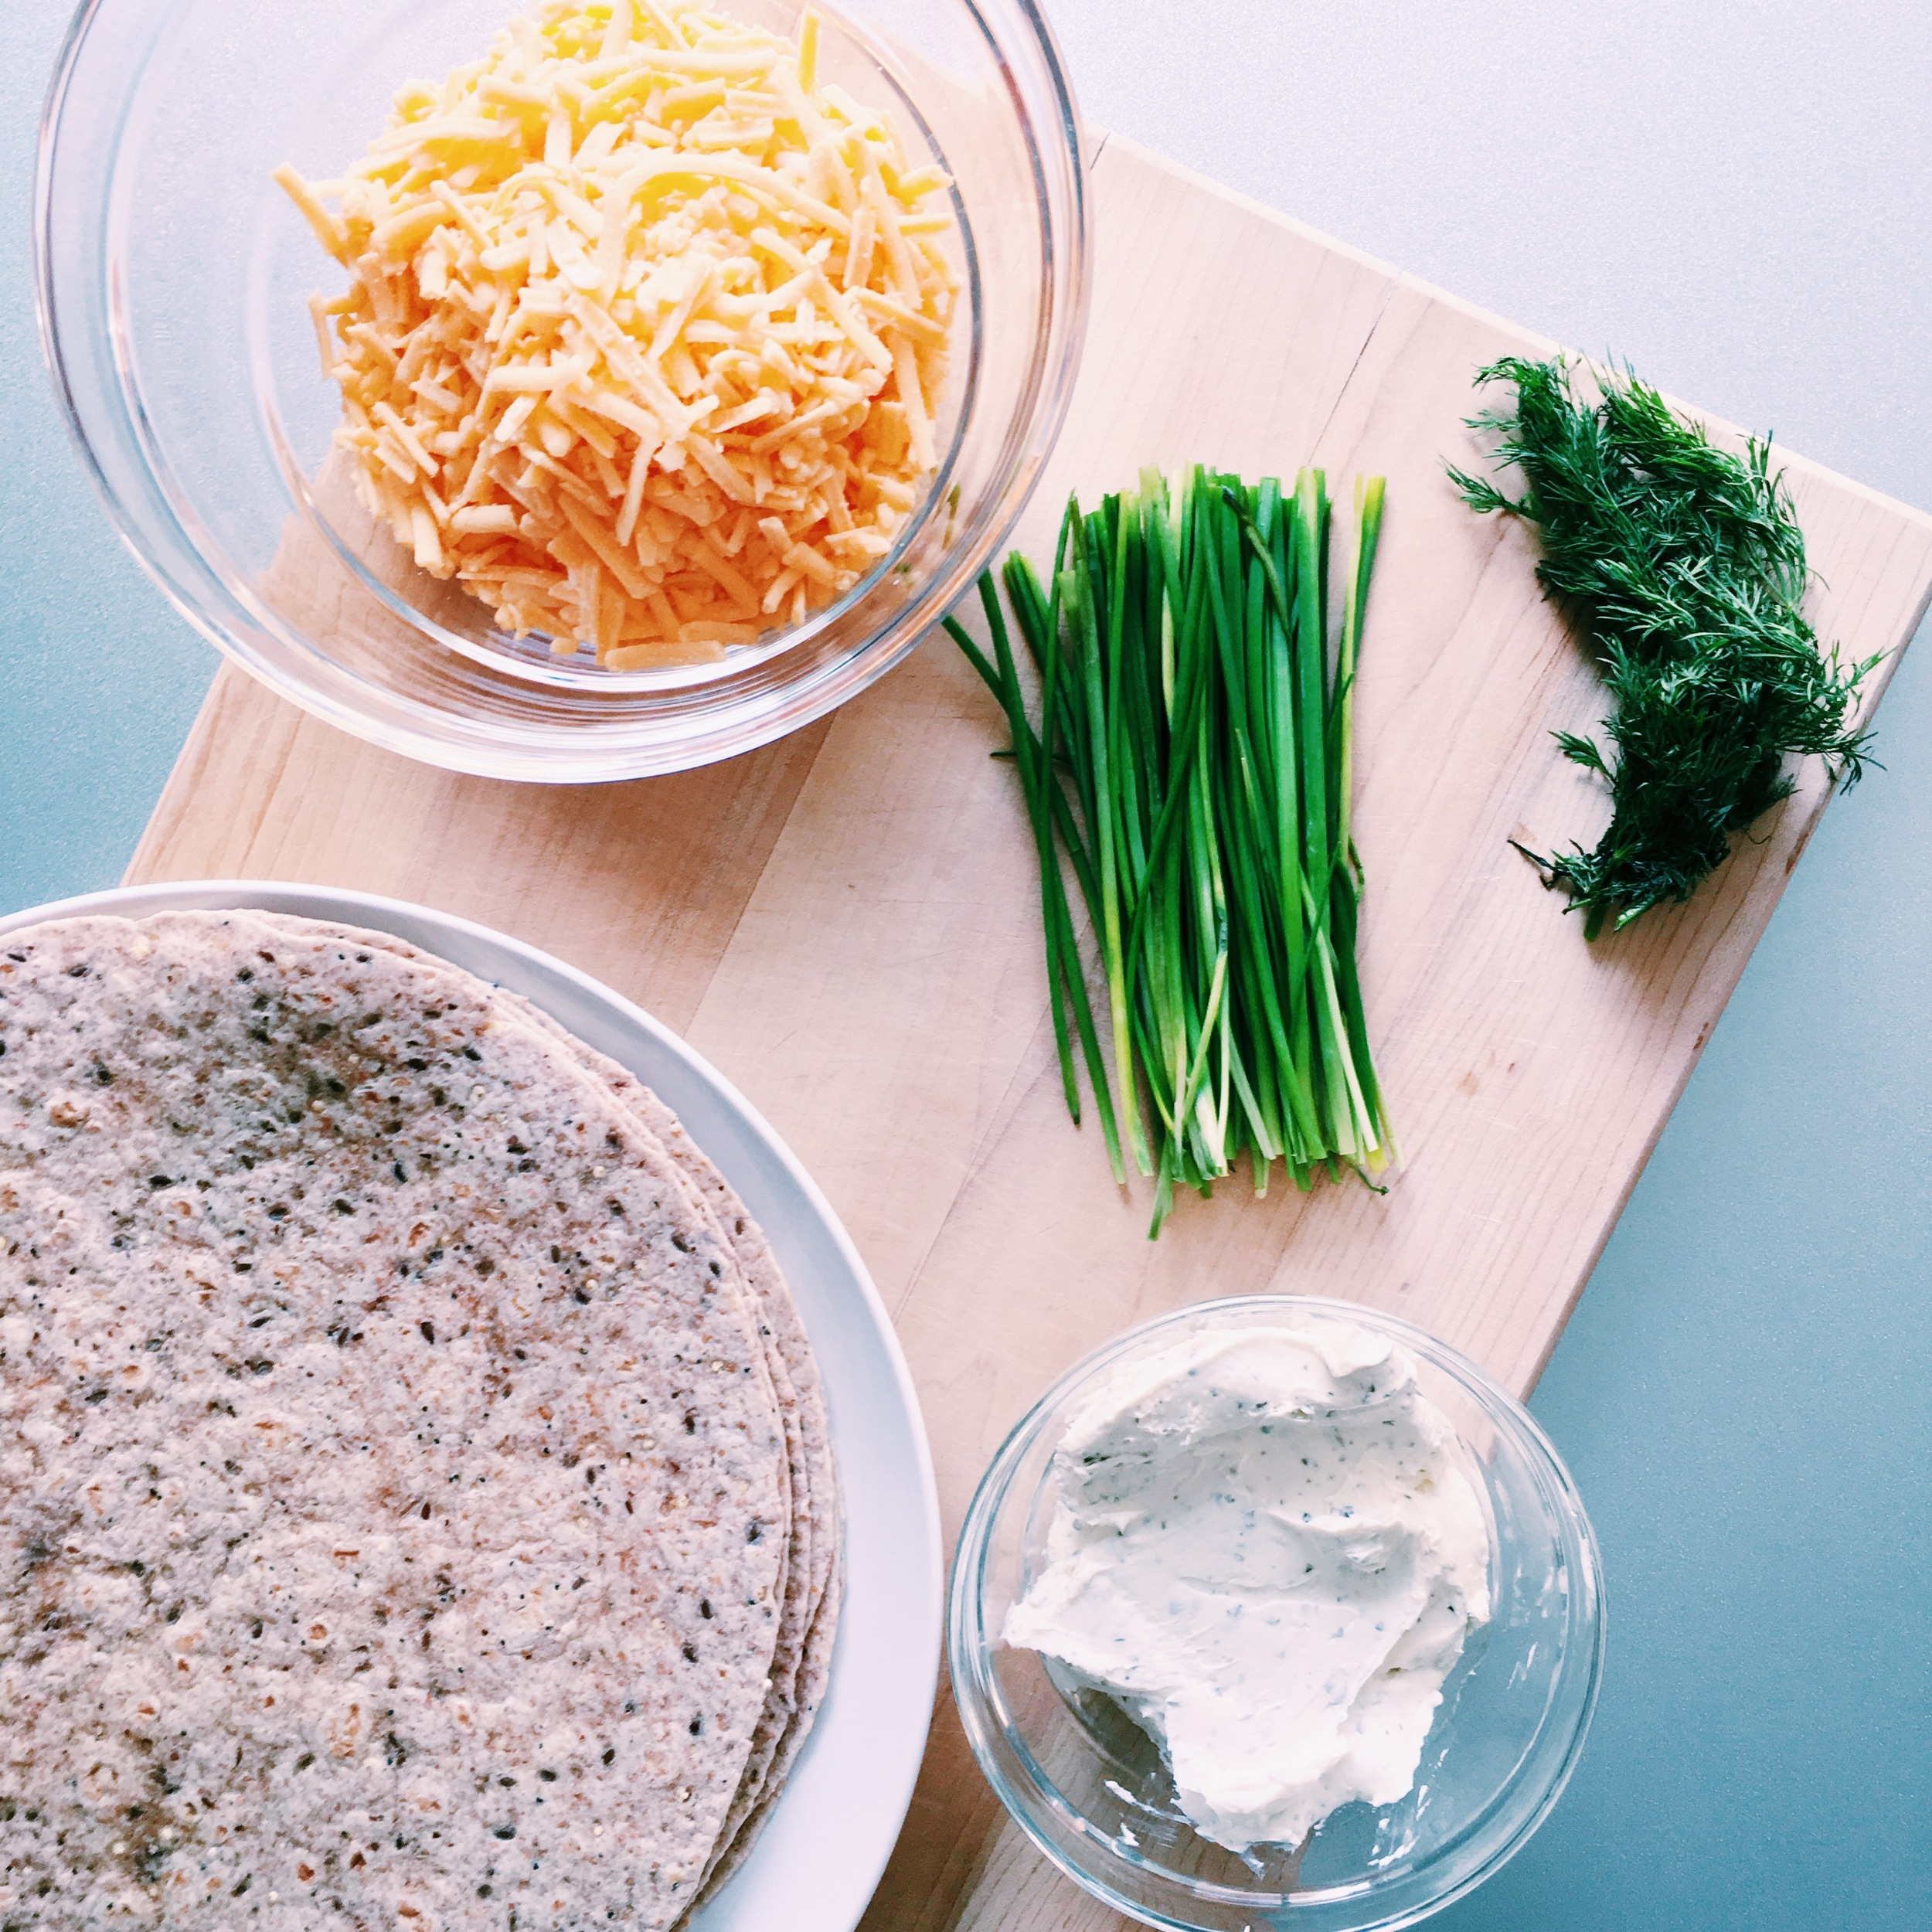 ingredients for Cheese and Chive Pinwheels